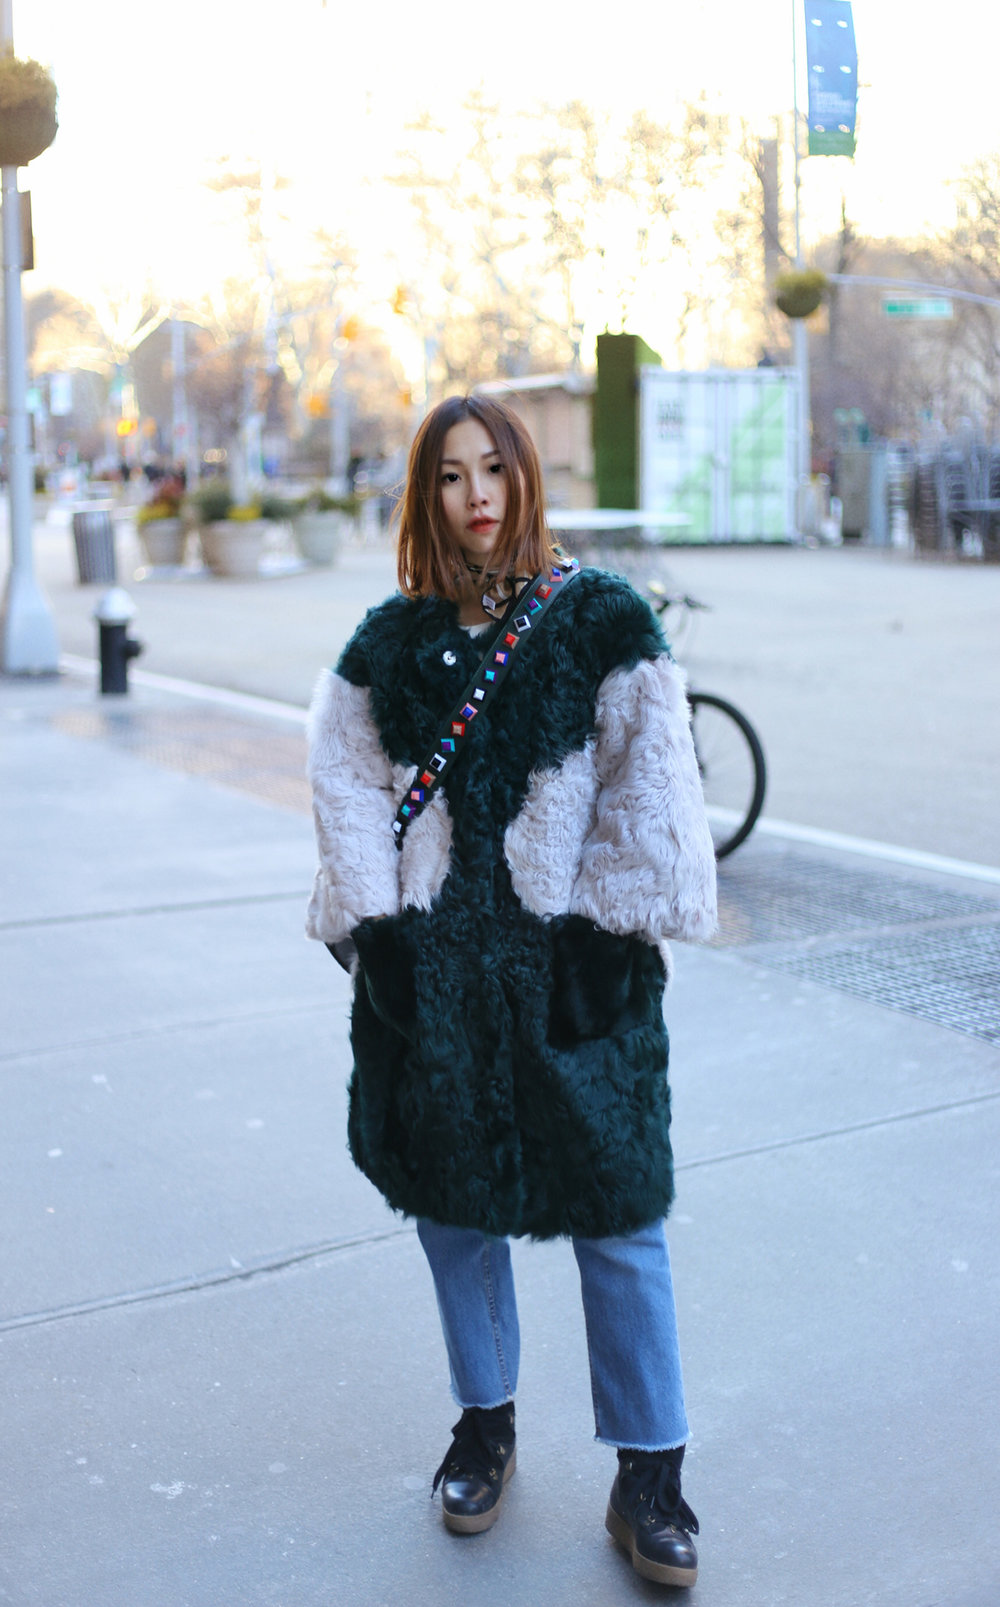 nyc fashion blogger street style.JPG